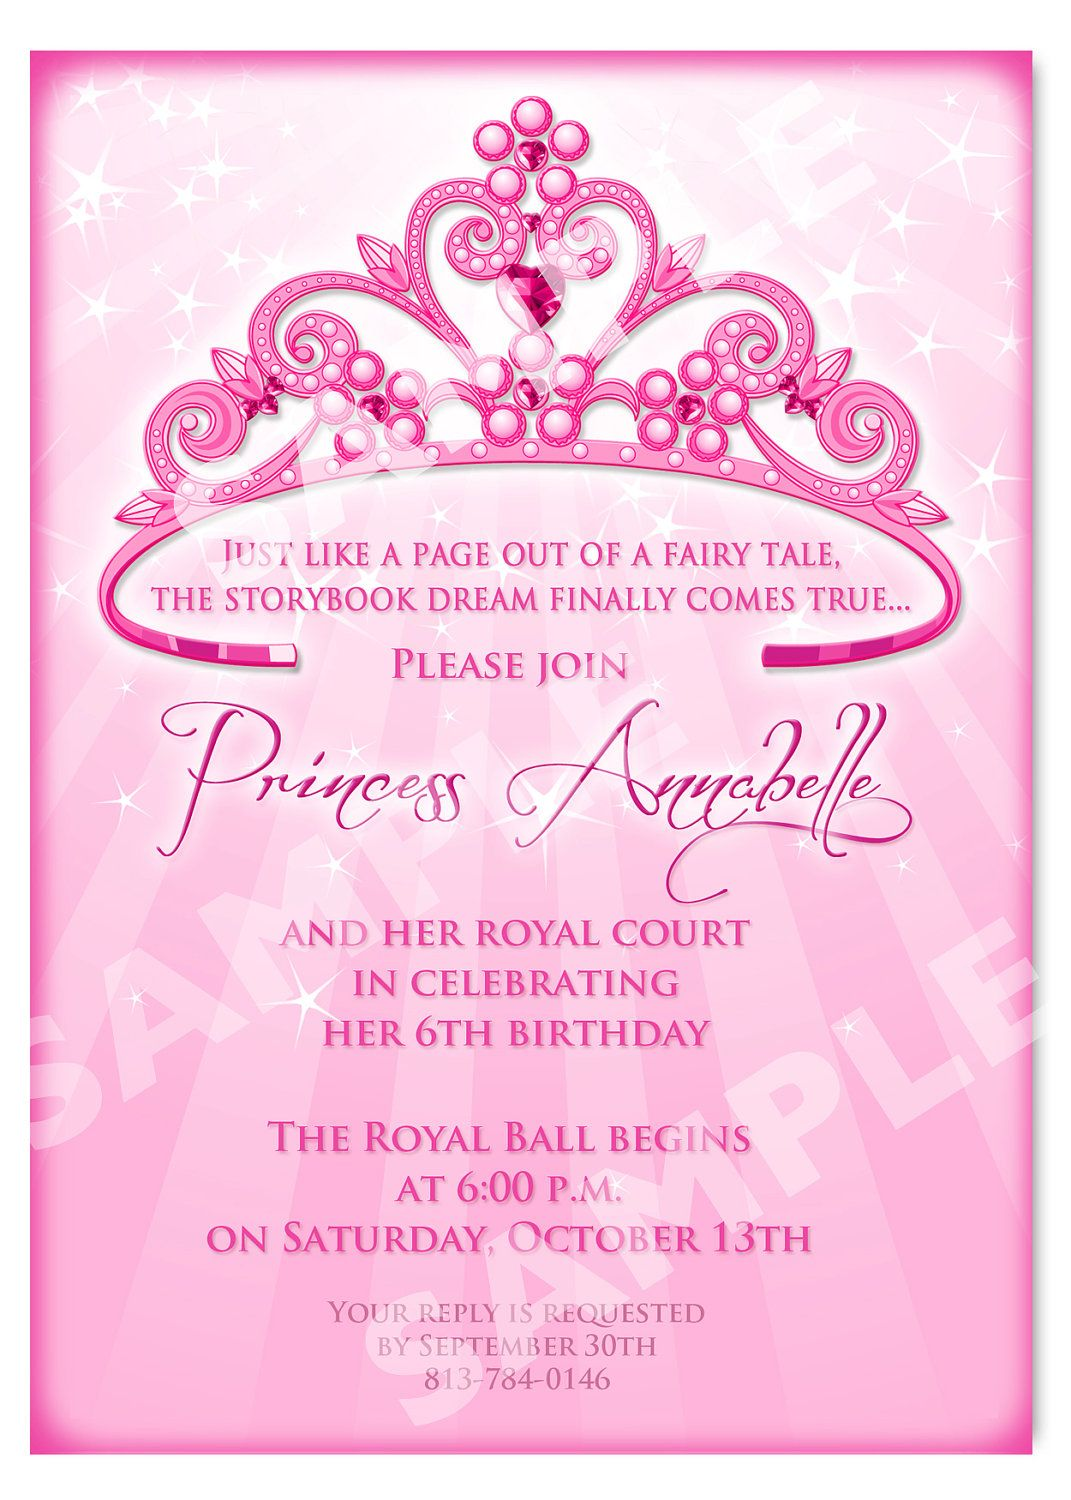 Printable princess invitation cards birthday party ideas printable princess invitation cards filmwisefo Images